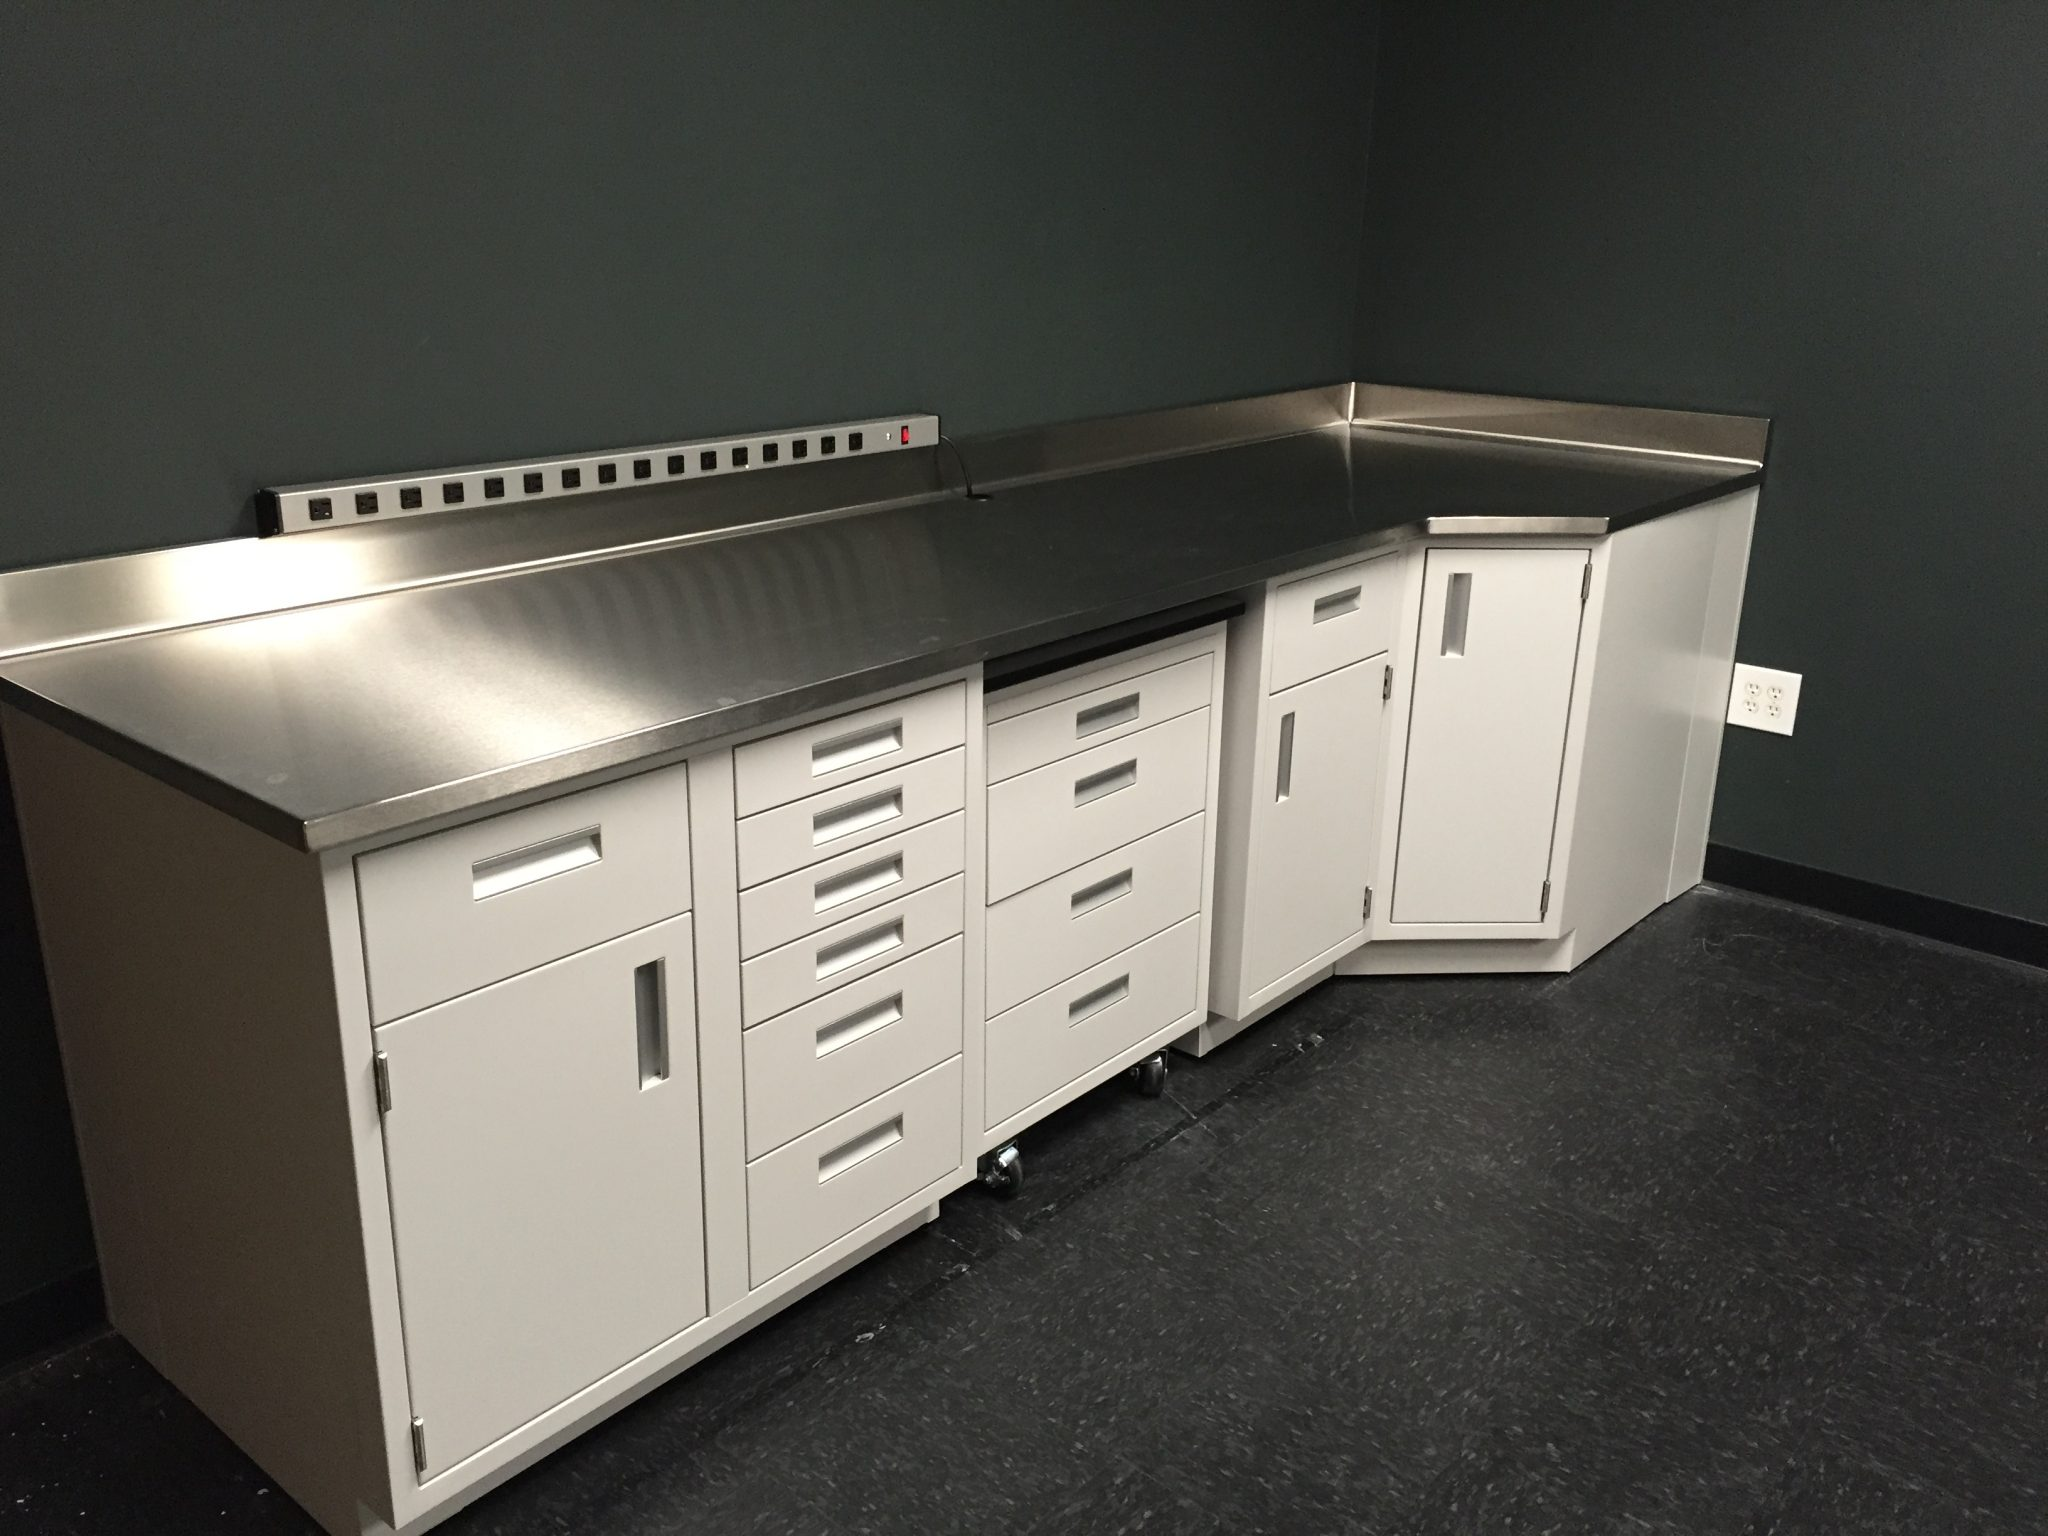 Laboratory Countertops & Sinks | LOC Scientific